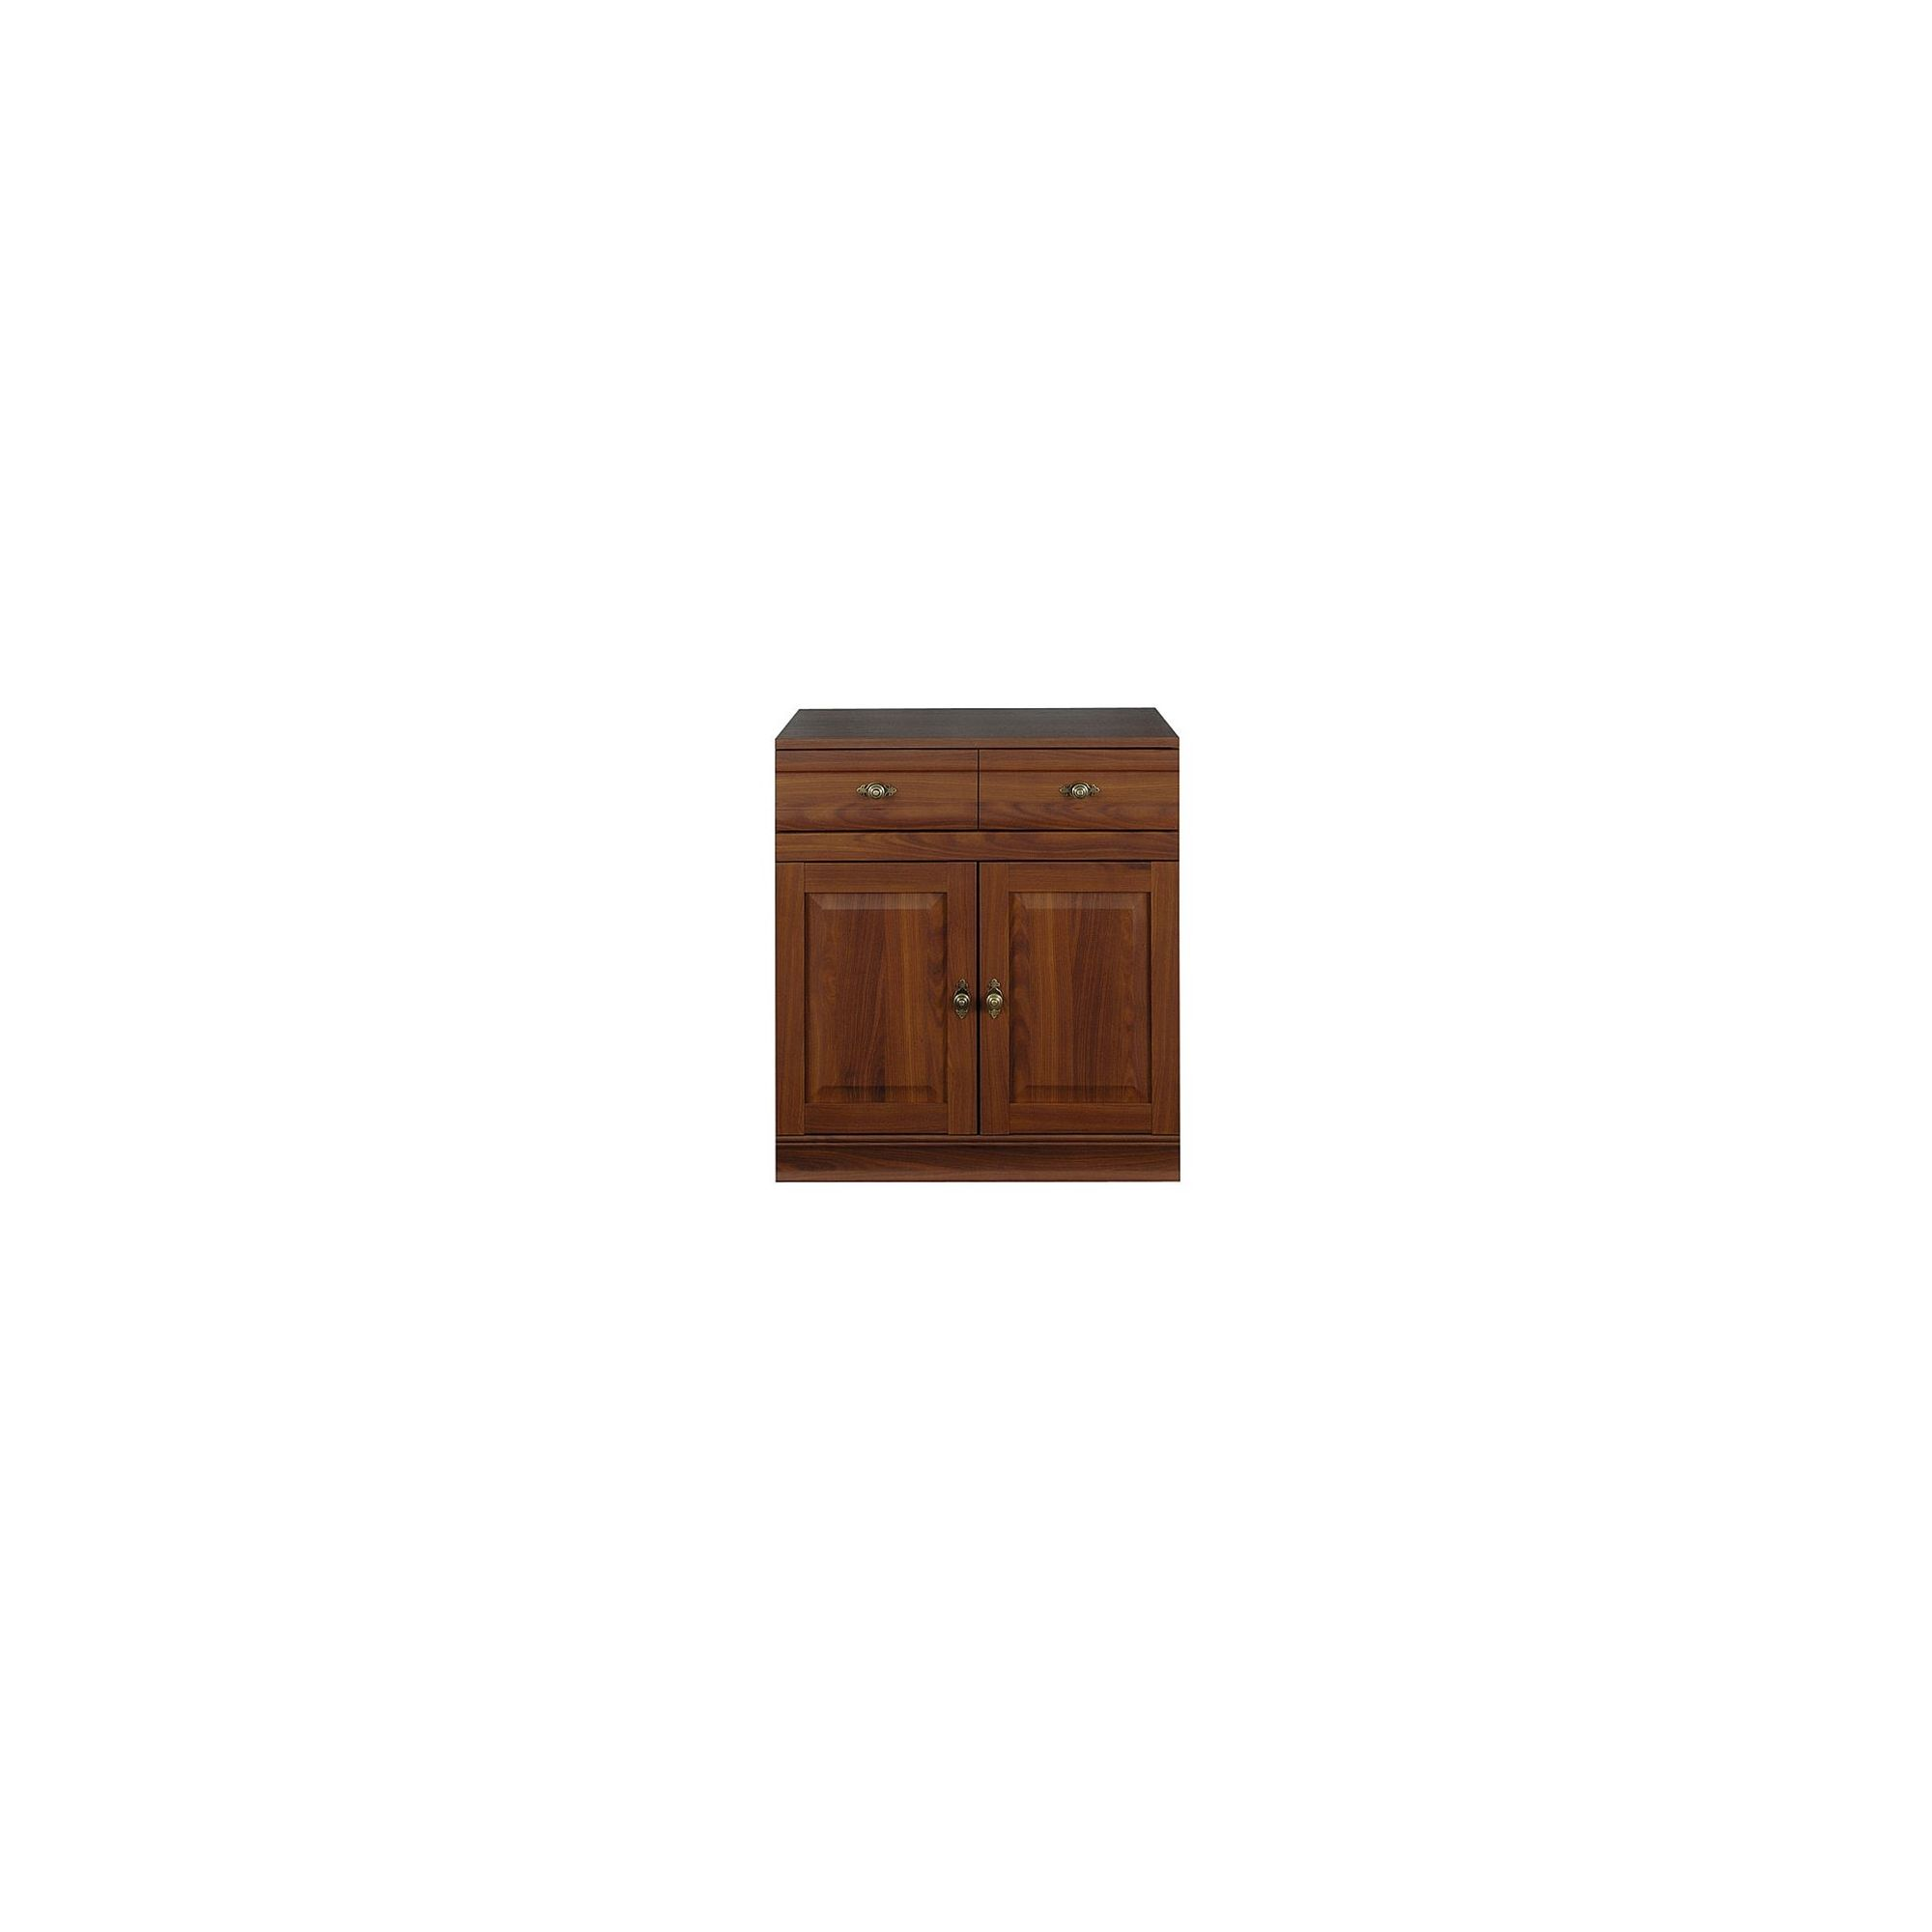 Caxton Lincoln 2 Door / 2 Drawer Sideboard in Cherry at Tesco Direct